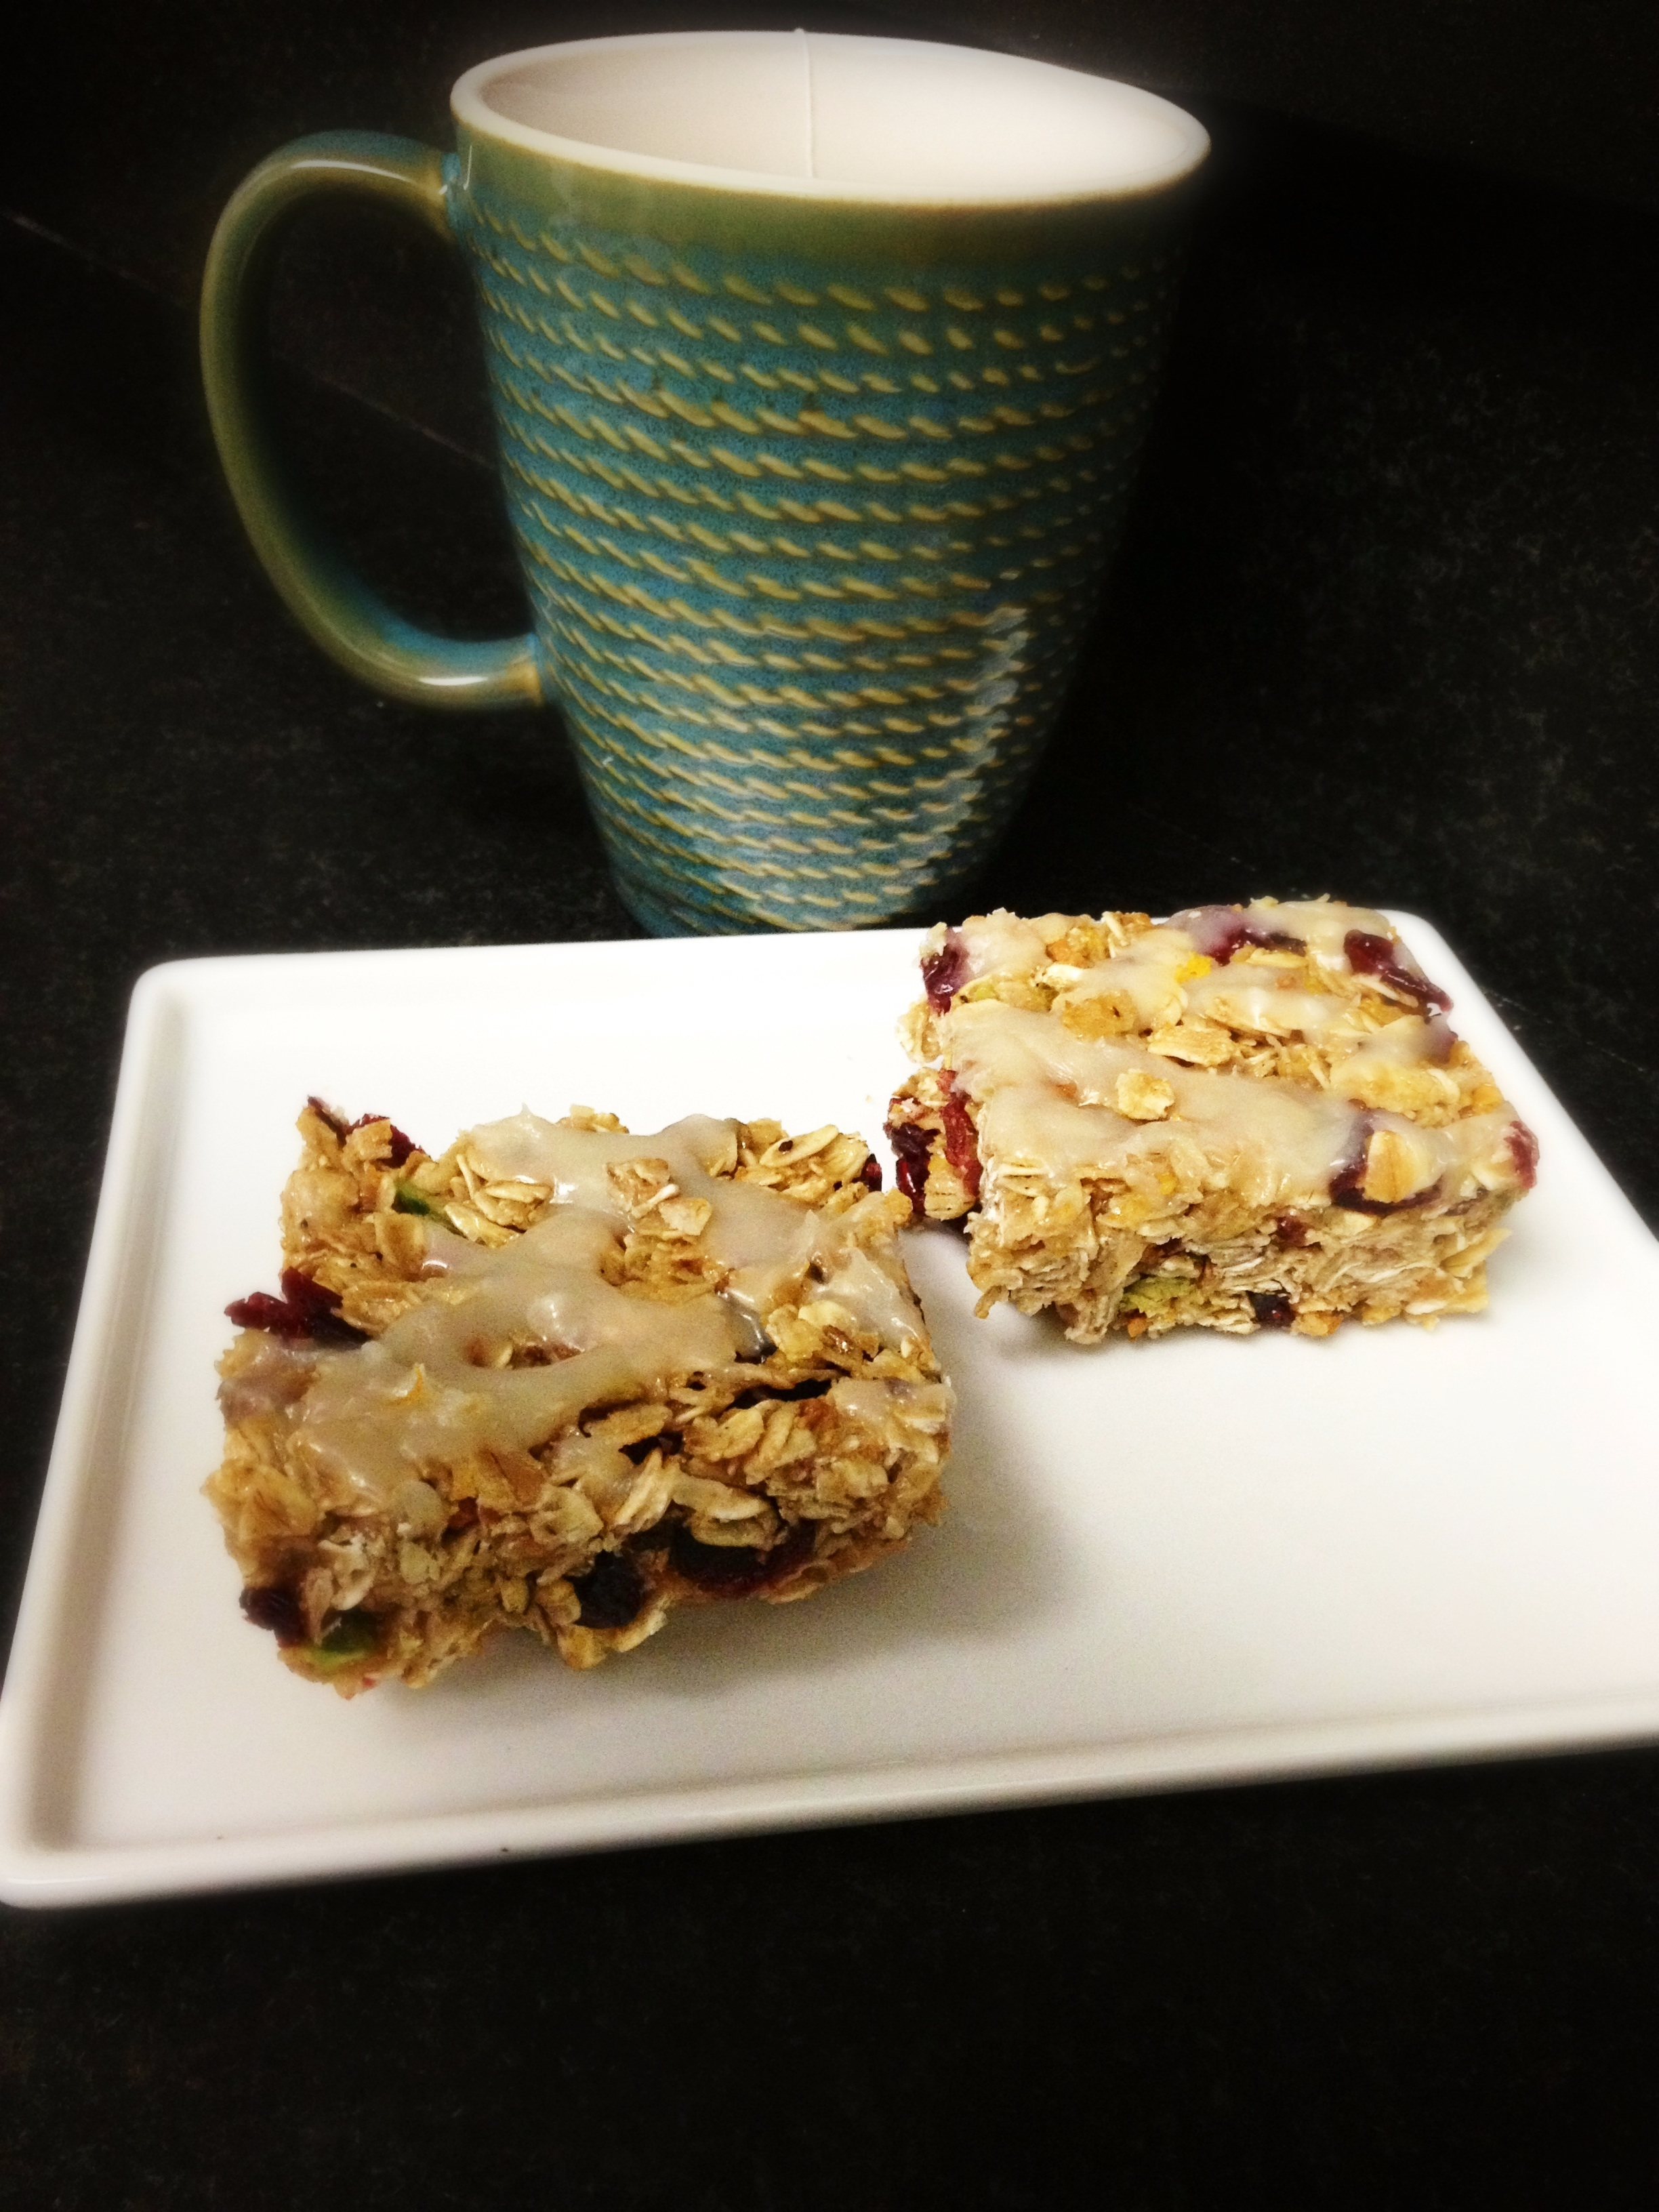 Pistachio Orange Cranberry Granola Bars with Greek Yogurt Drizzle